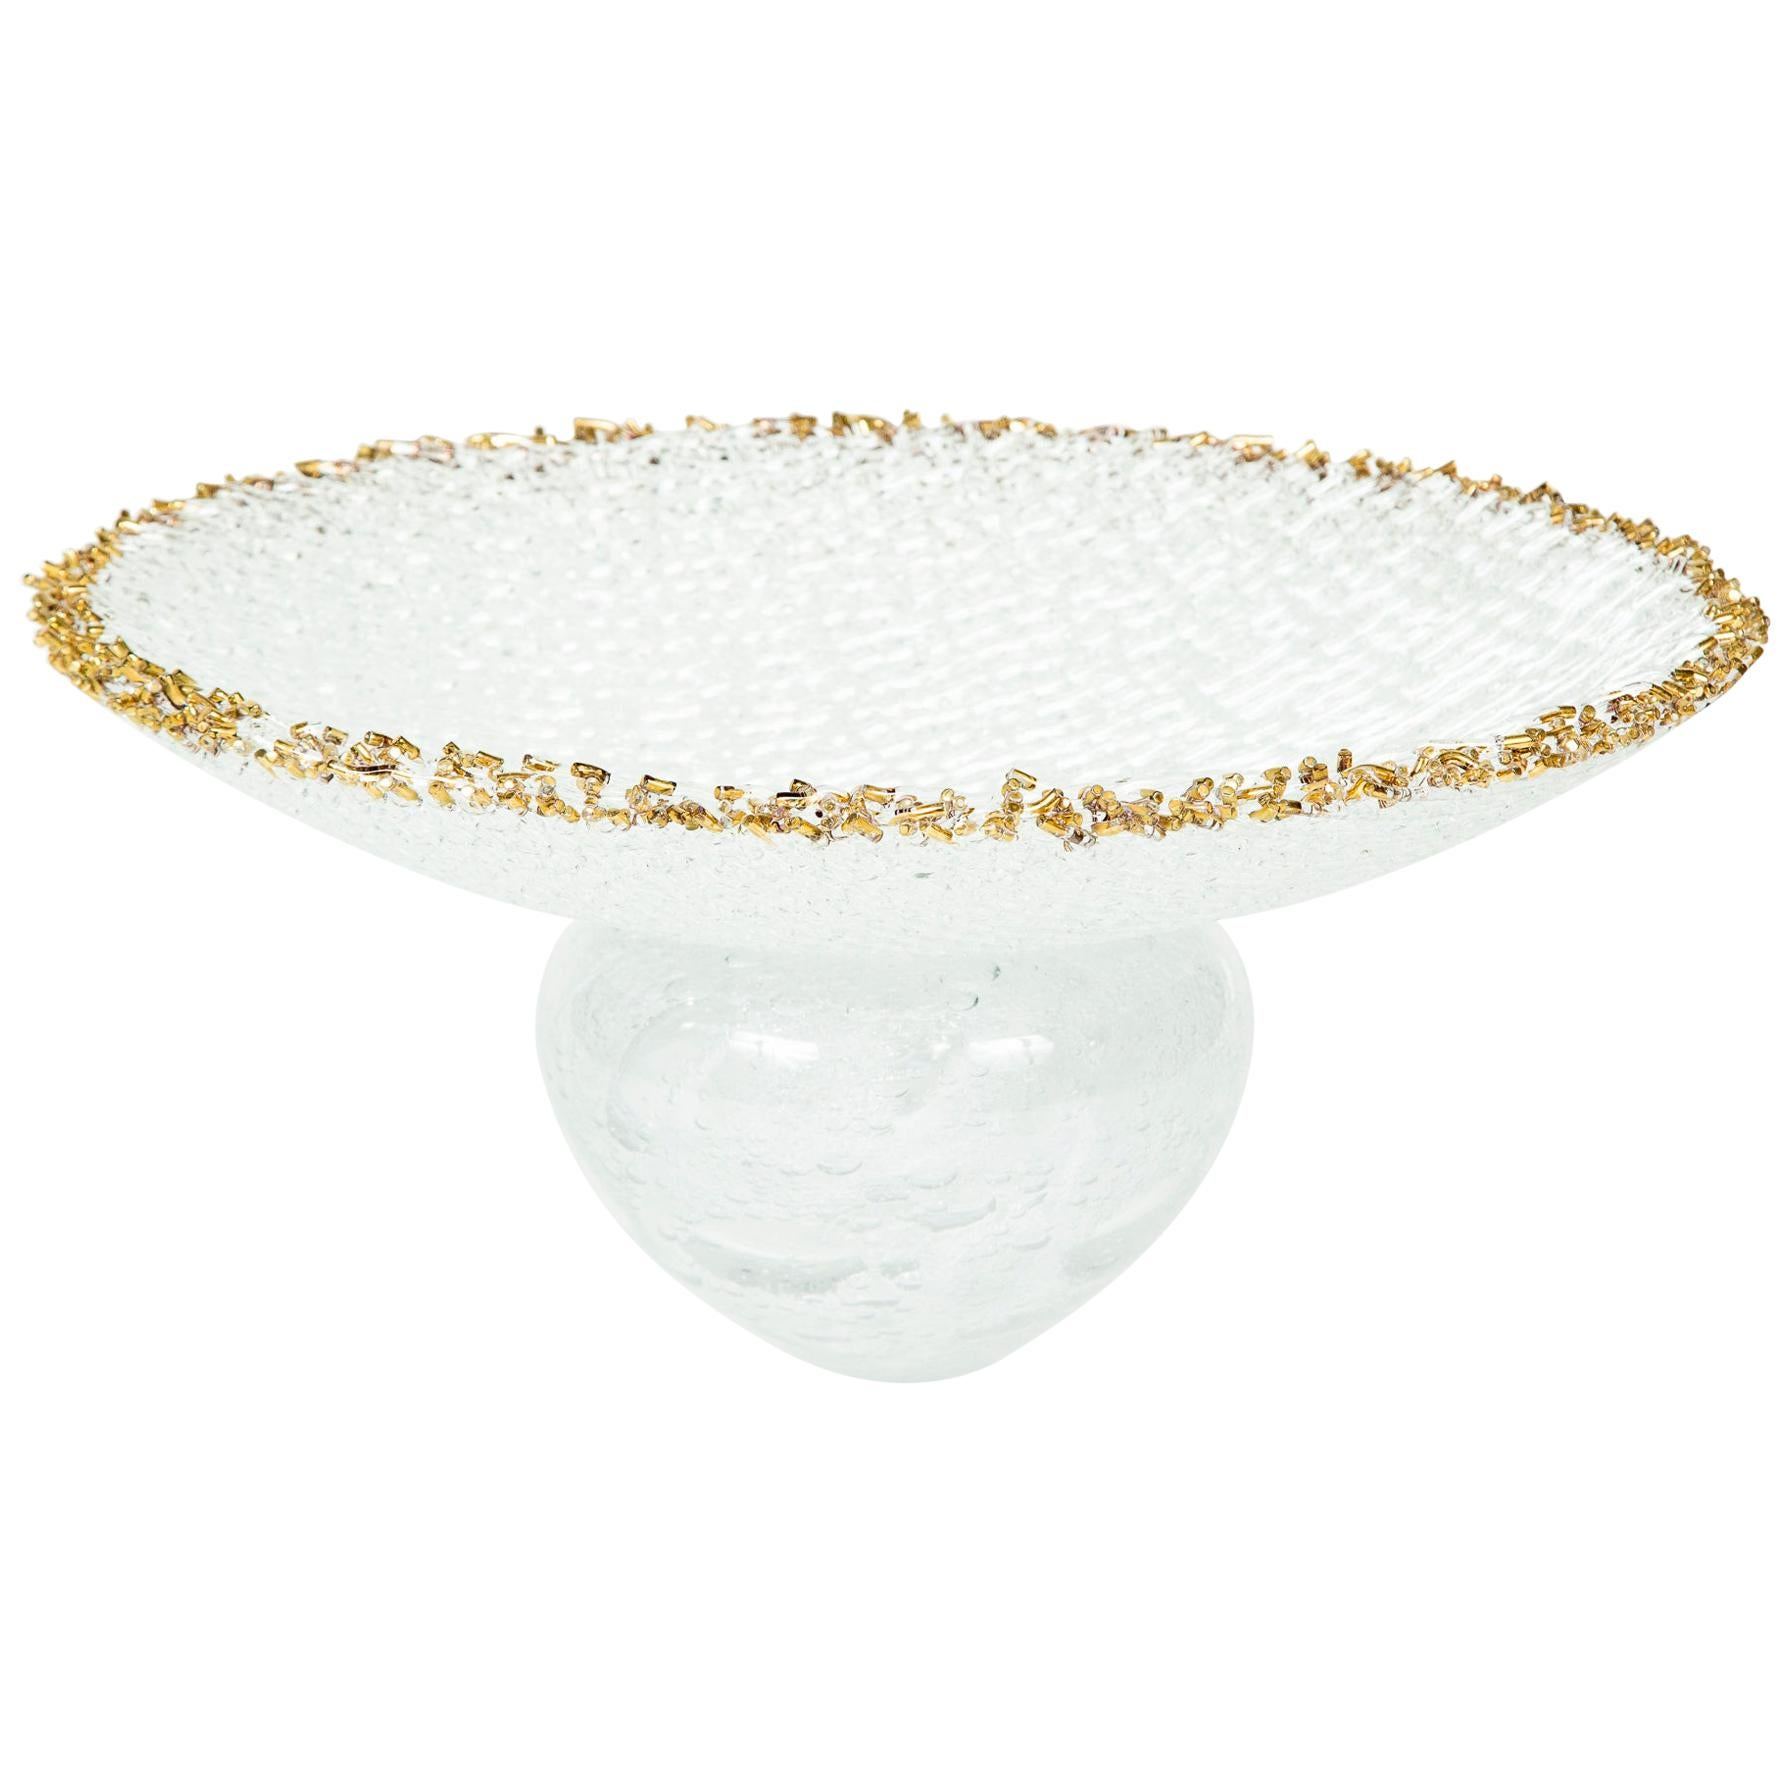 Woven Chalice, a Unique clear Glass Centrepiece / Sculpture by Cathryn Shilling